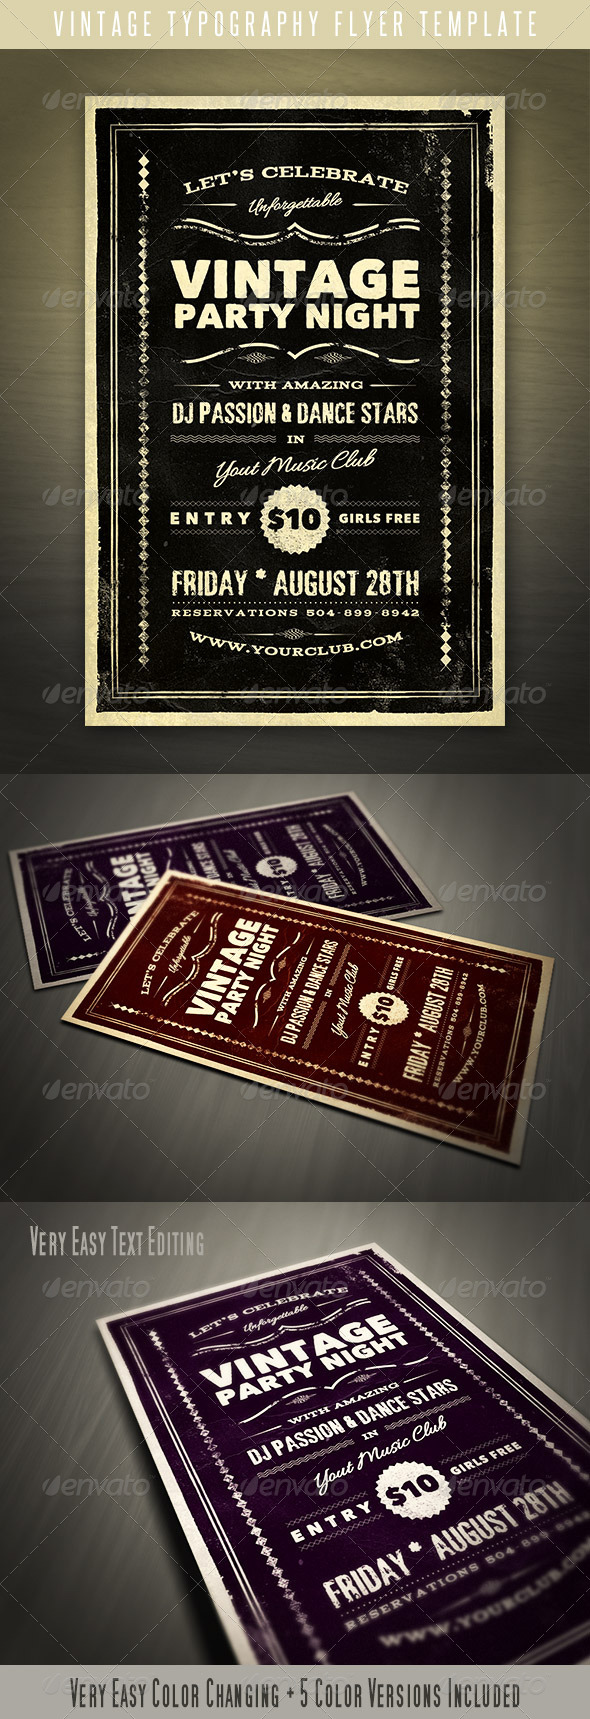 GraphicRiver Vintage Typography Flyer 4562880